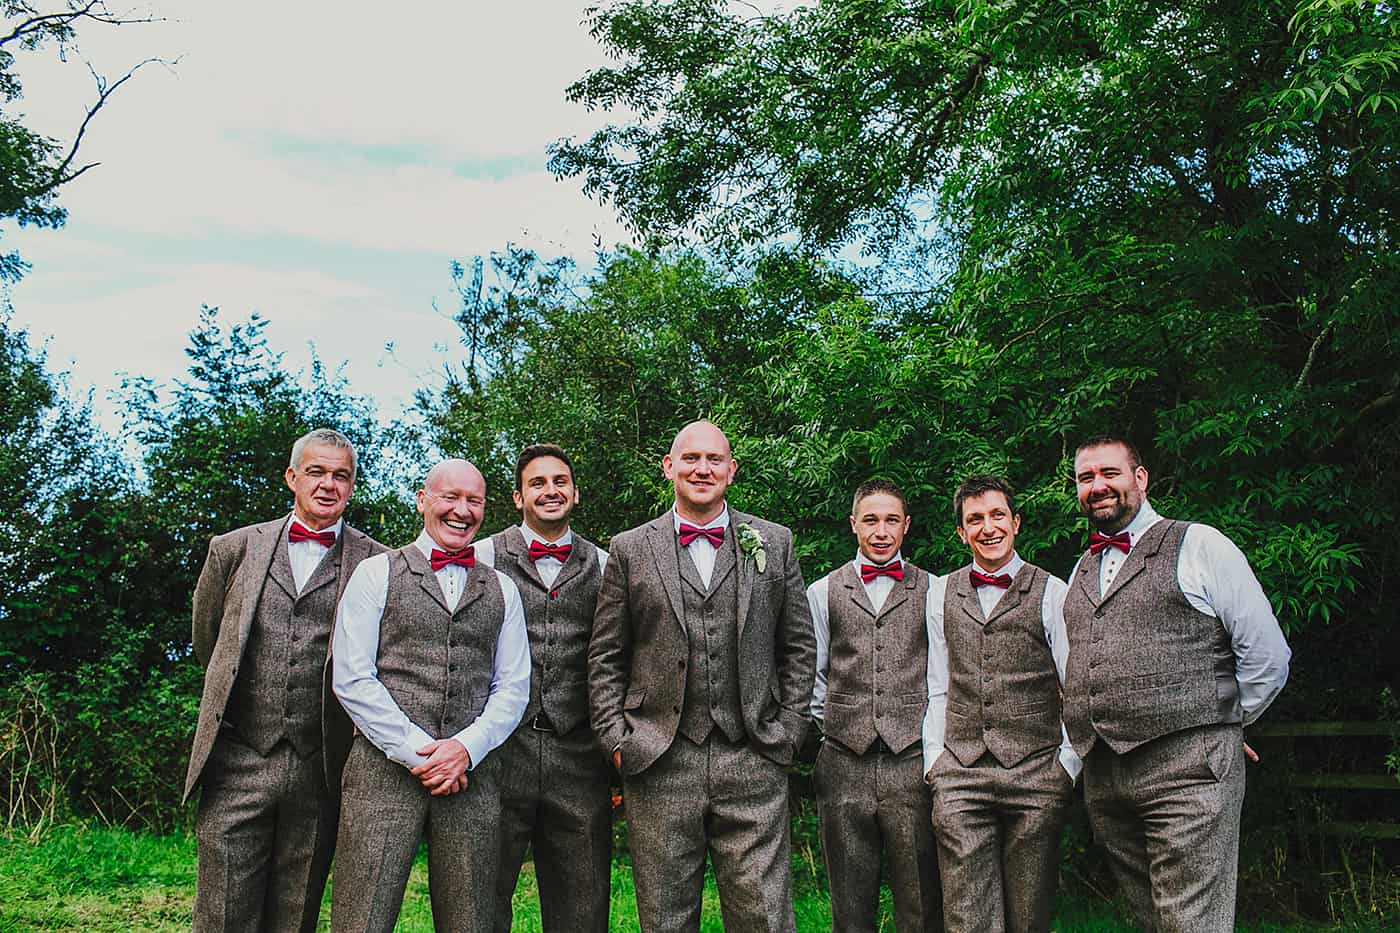 Groomsmen tweed suits